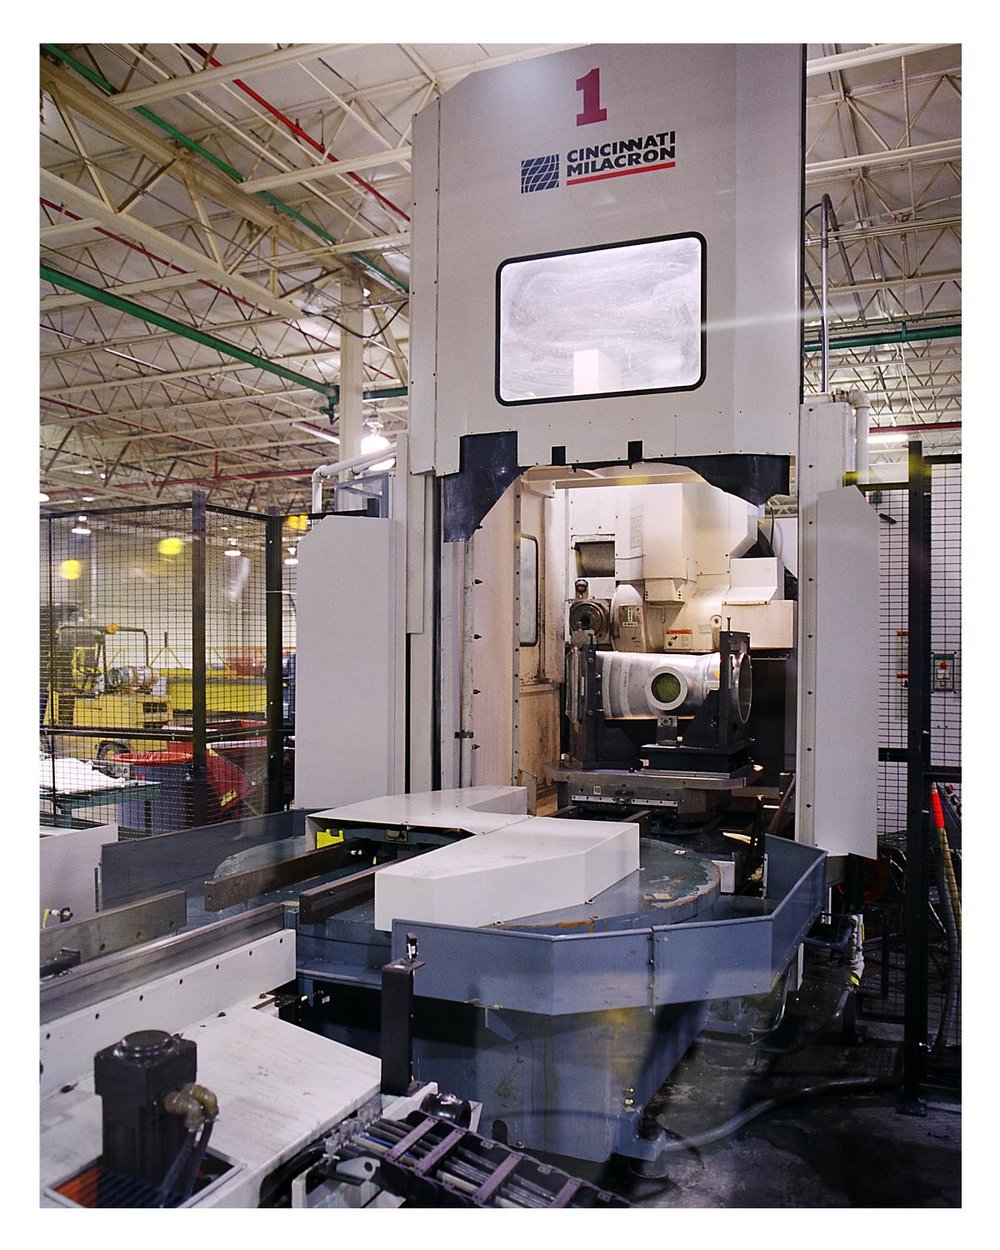 Flexible Manufacturing Cell - Cincinnati Milacron T35 & T40   Work Space – 64 in x 60 in  Weights up-to 5,500 lbs.  2,800+ Machine Hrs/Mo.